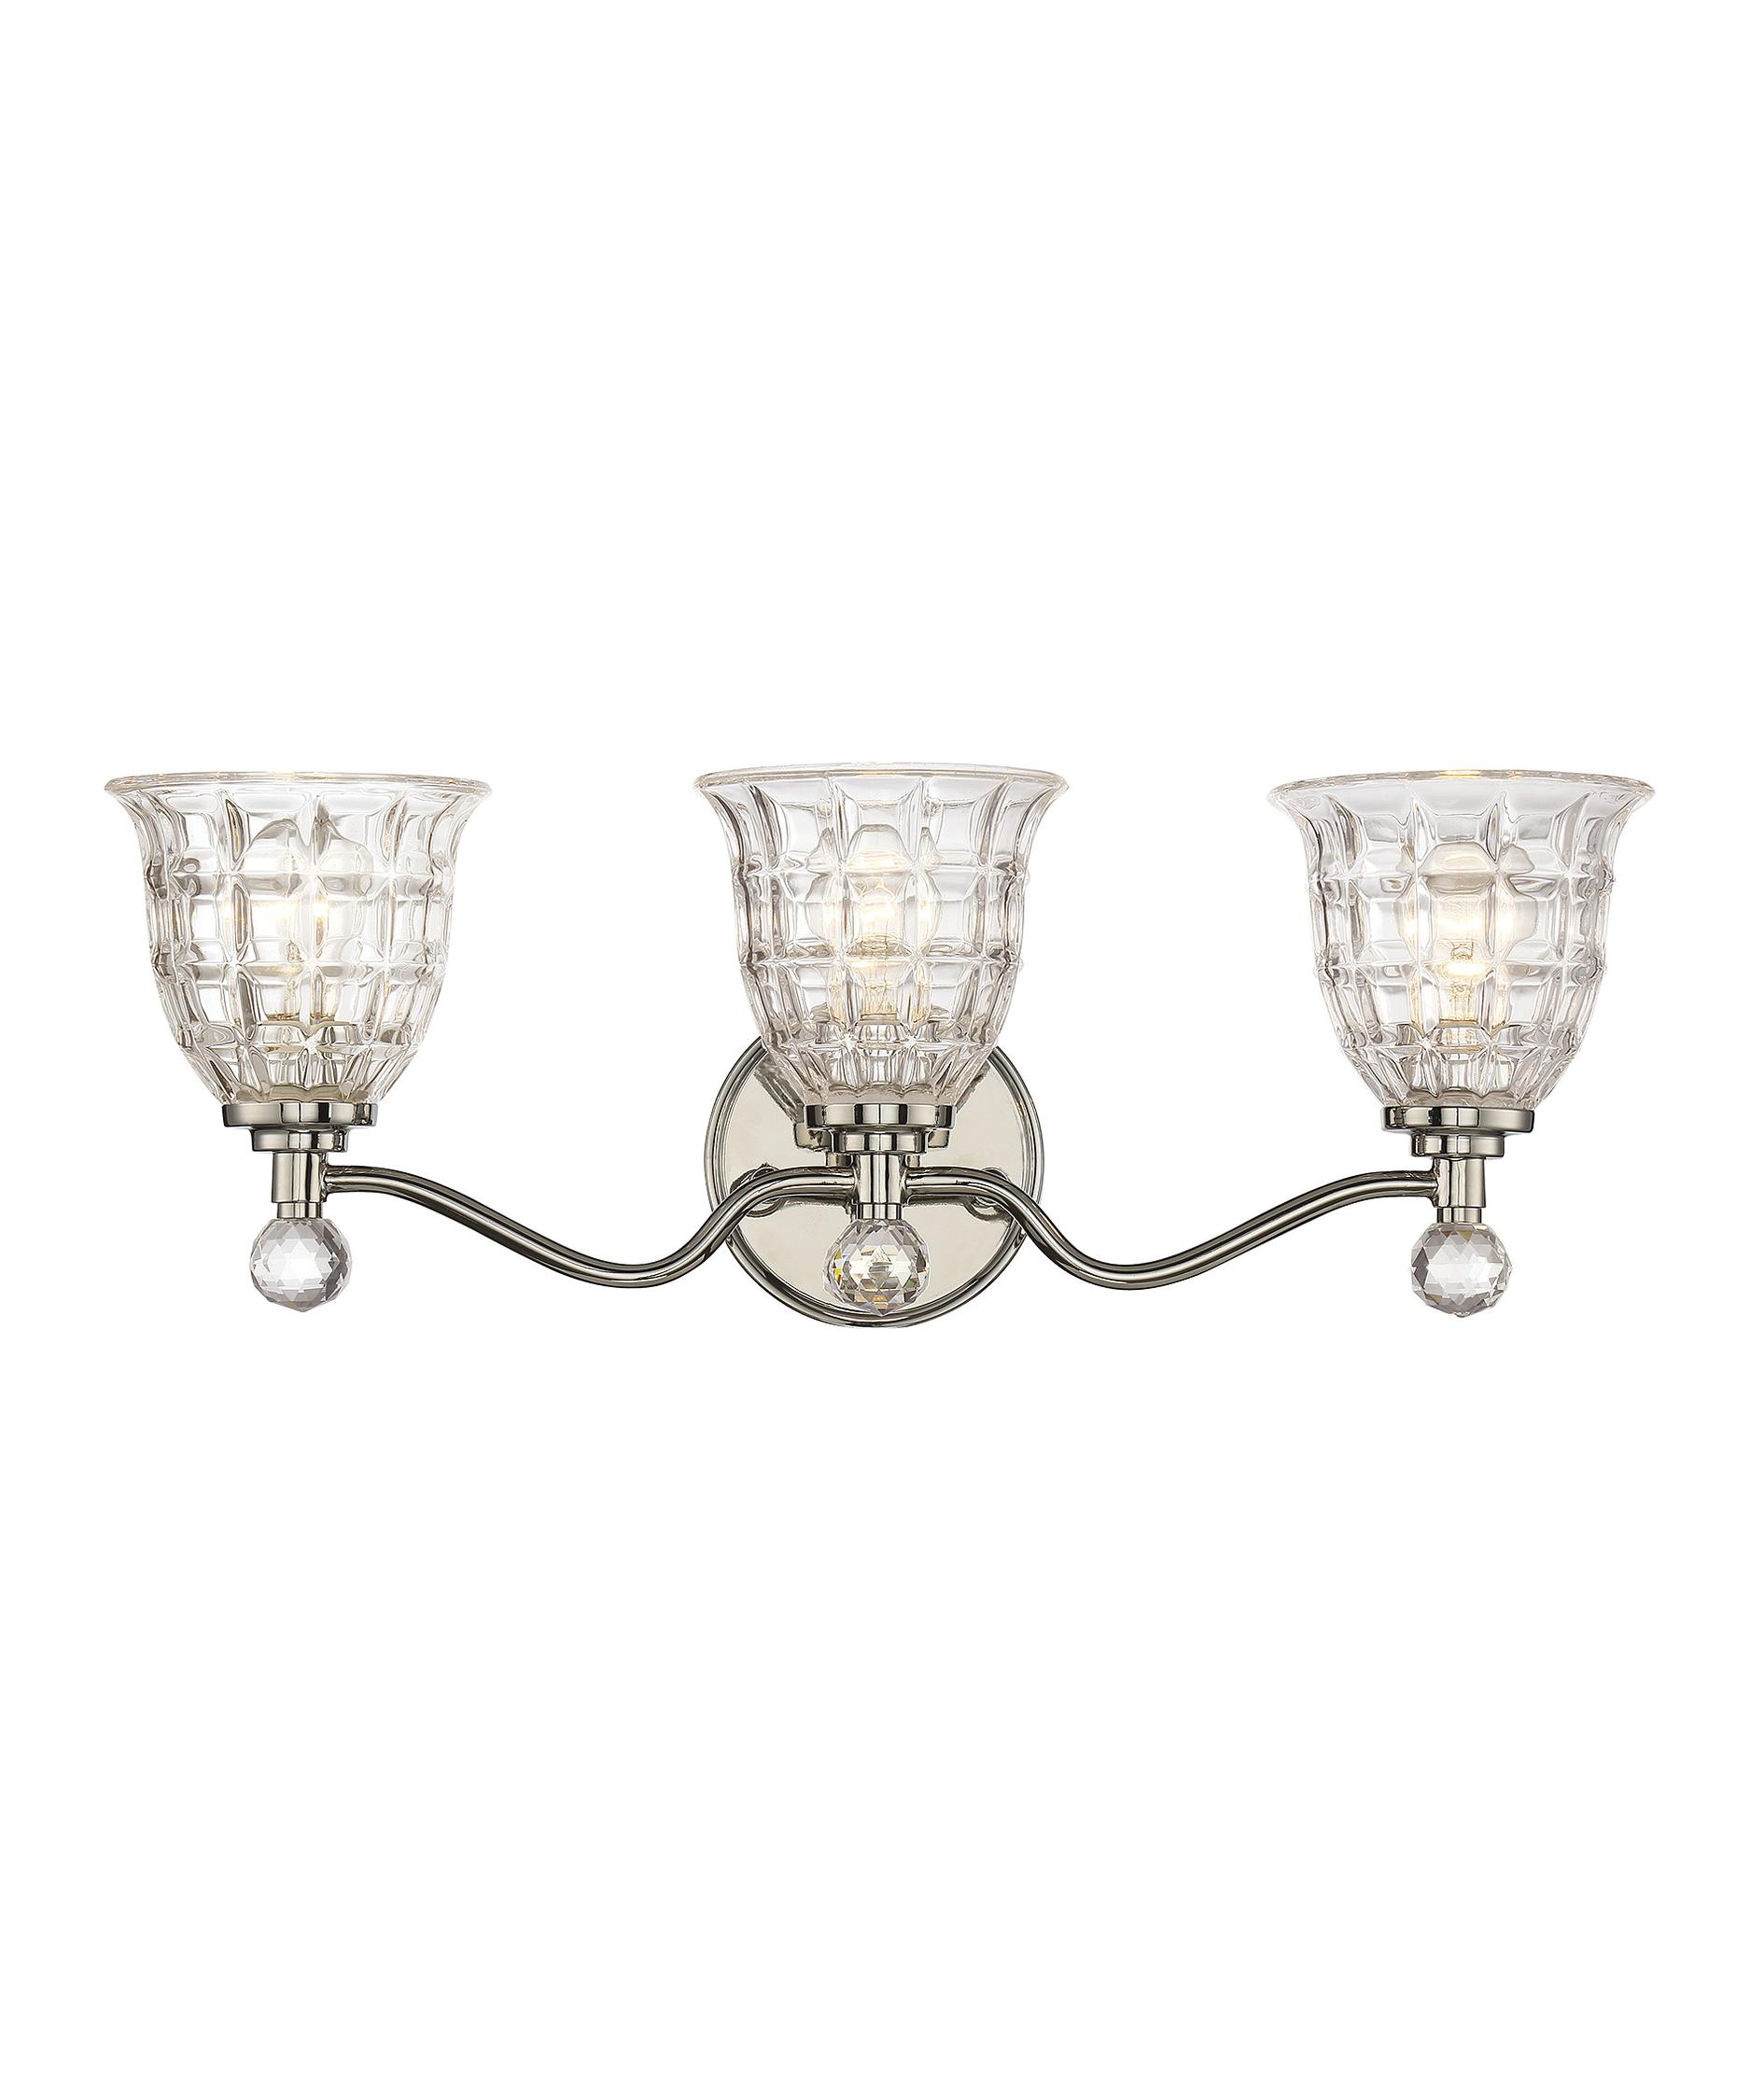 Bathroom Vanity Lights Polished Nickel savoy house 8-880-3-109 birone 24 inch wide bath vanity light